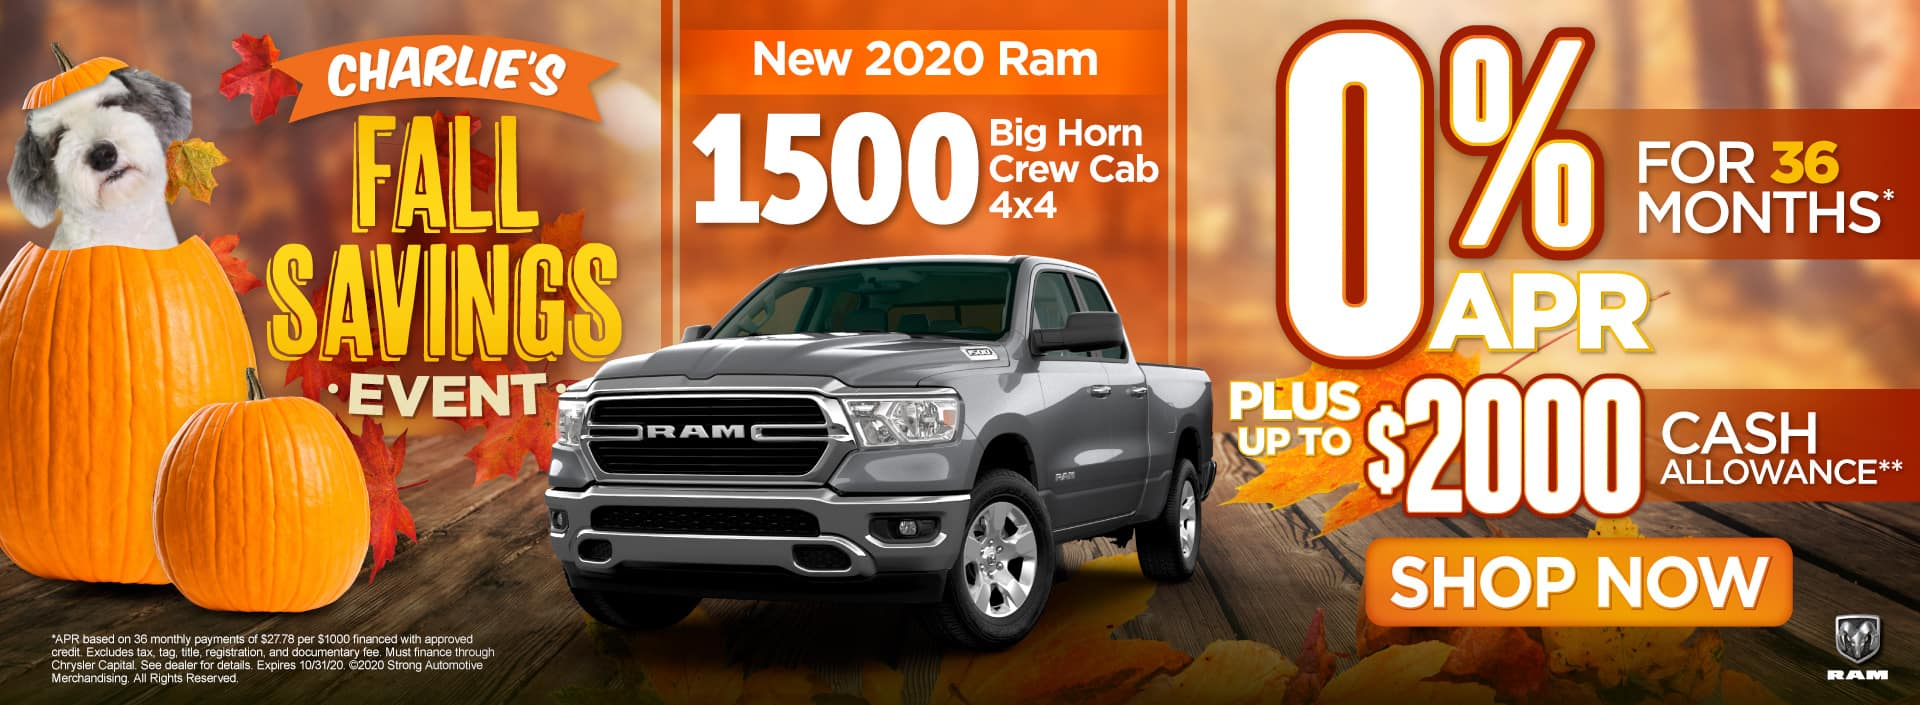 New 2020 Ram 1500 - 0% APR for 36 months - Shop Now